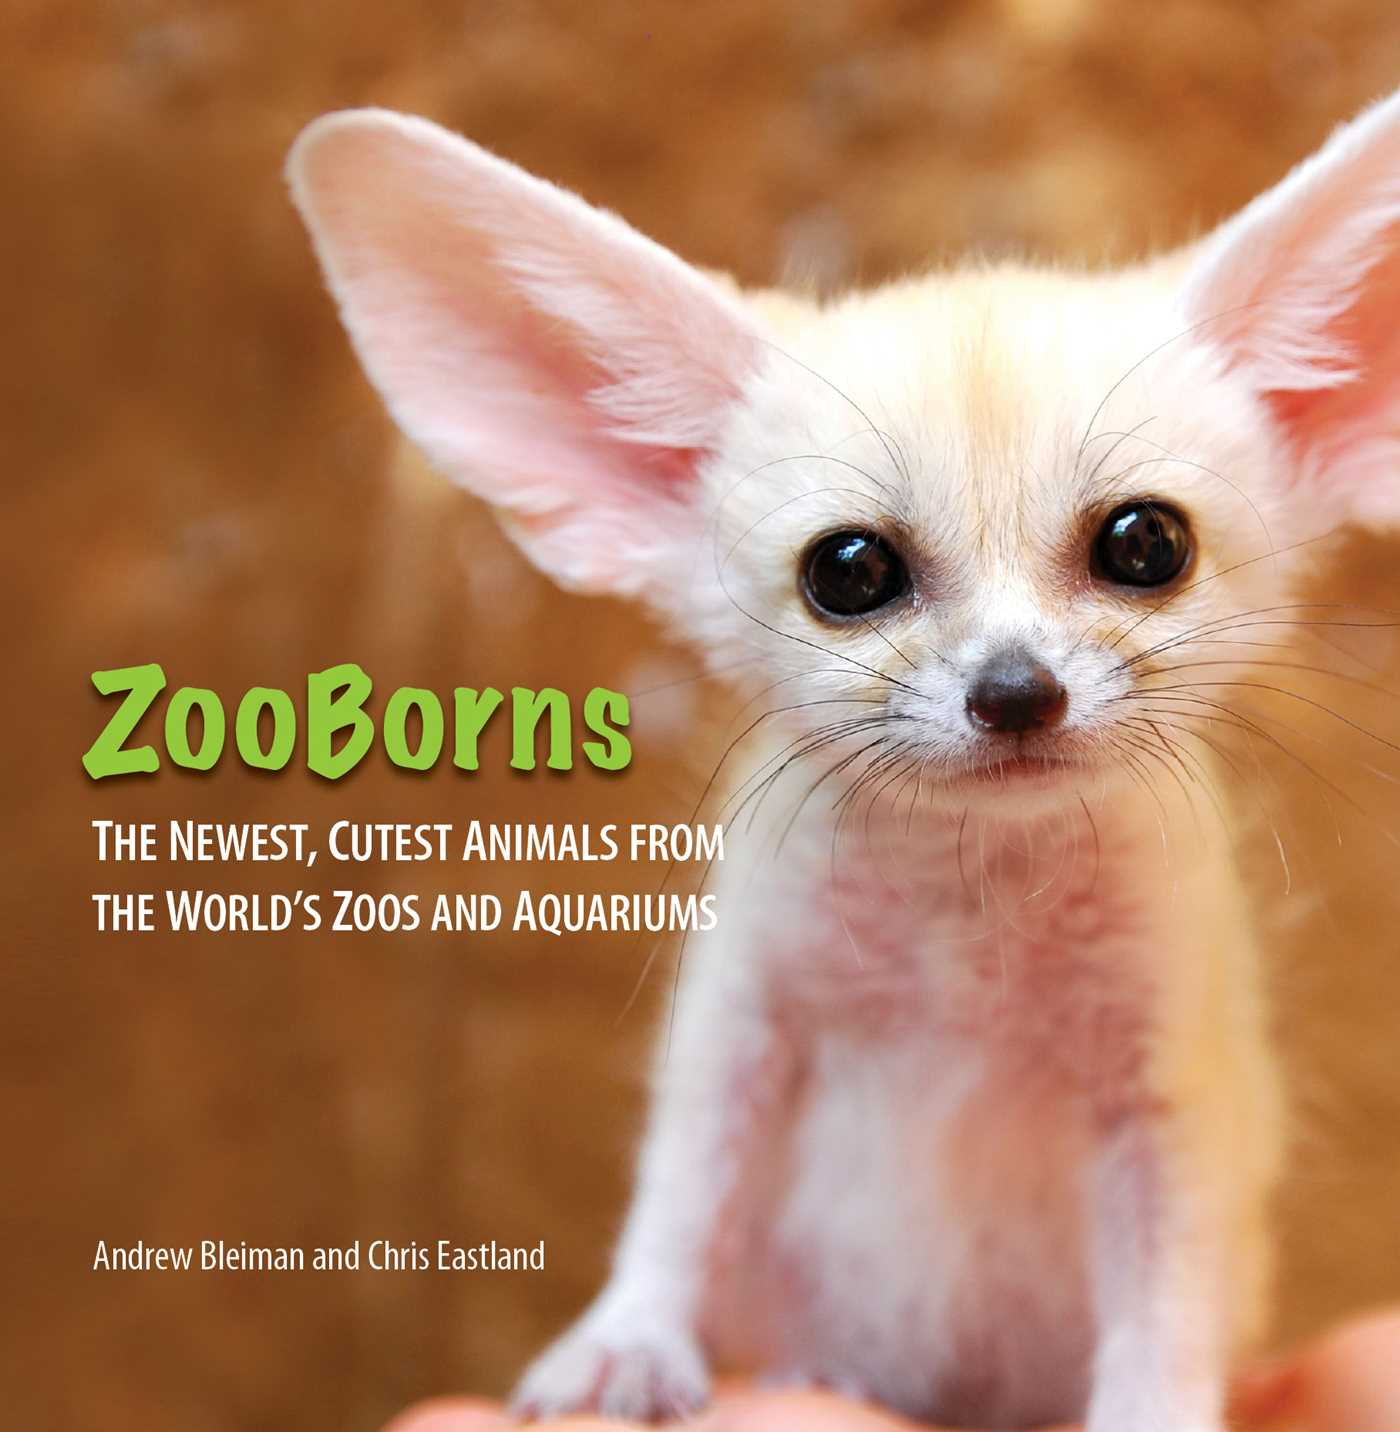 Zooborns-9781439195314_hr